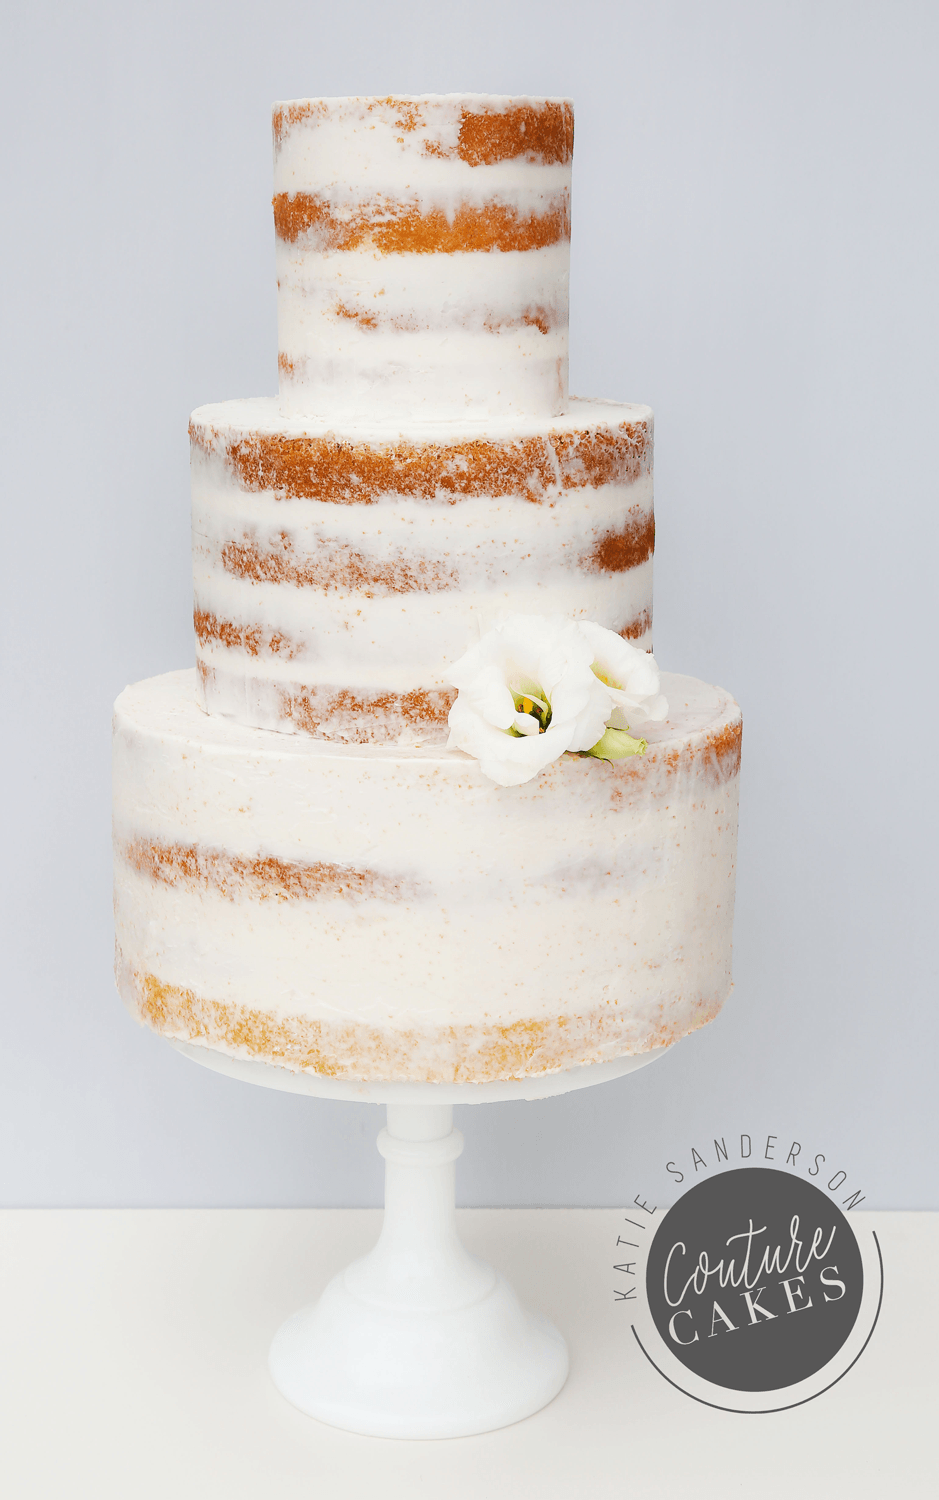 Naked Cake serves 110 portions, Price £335